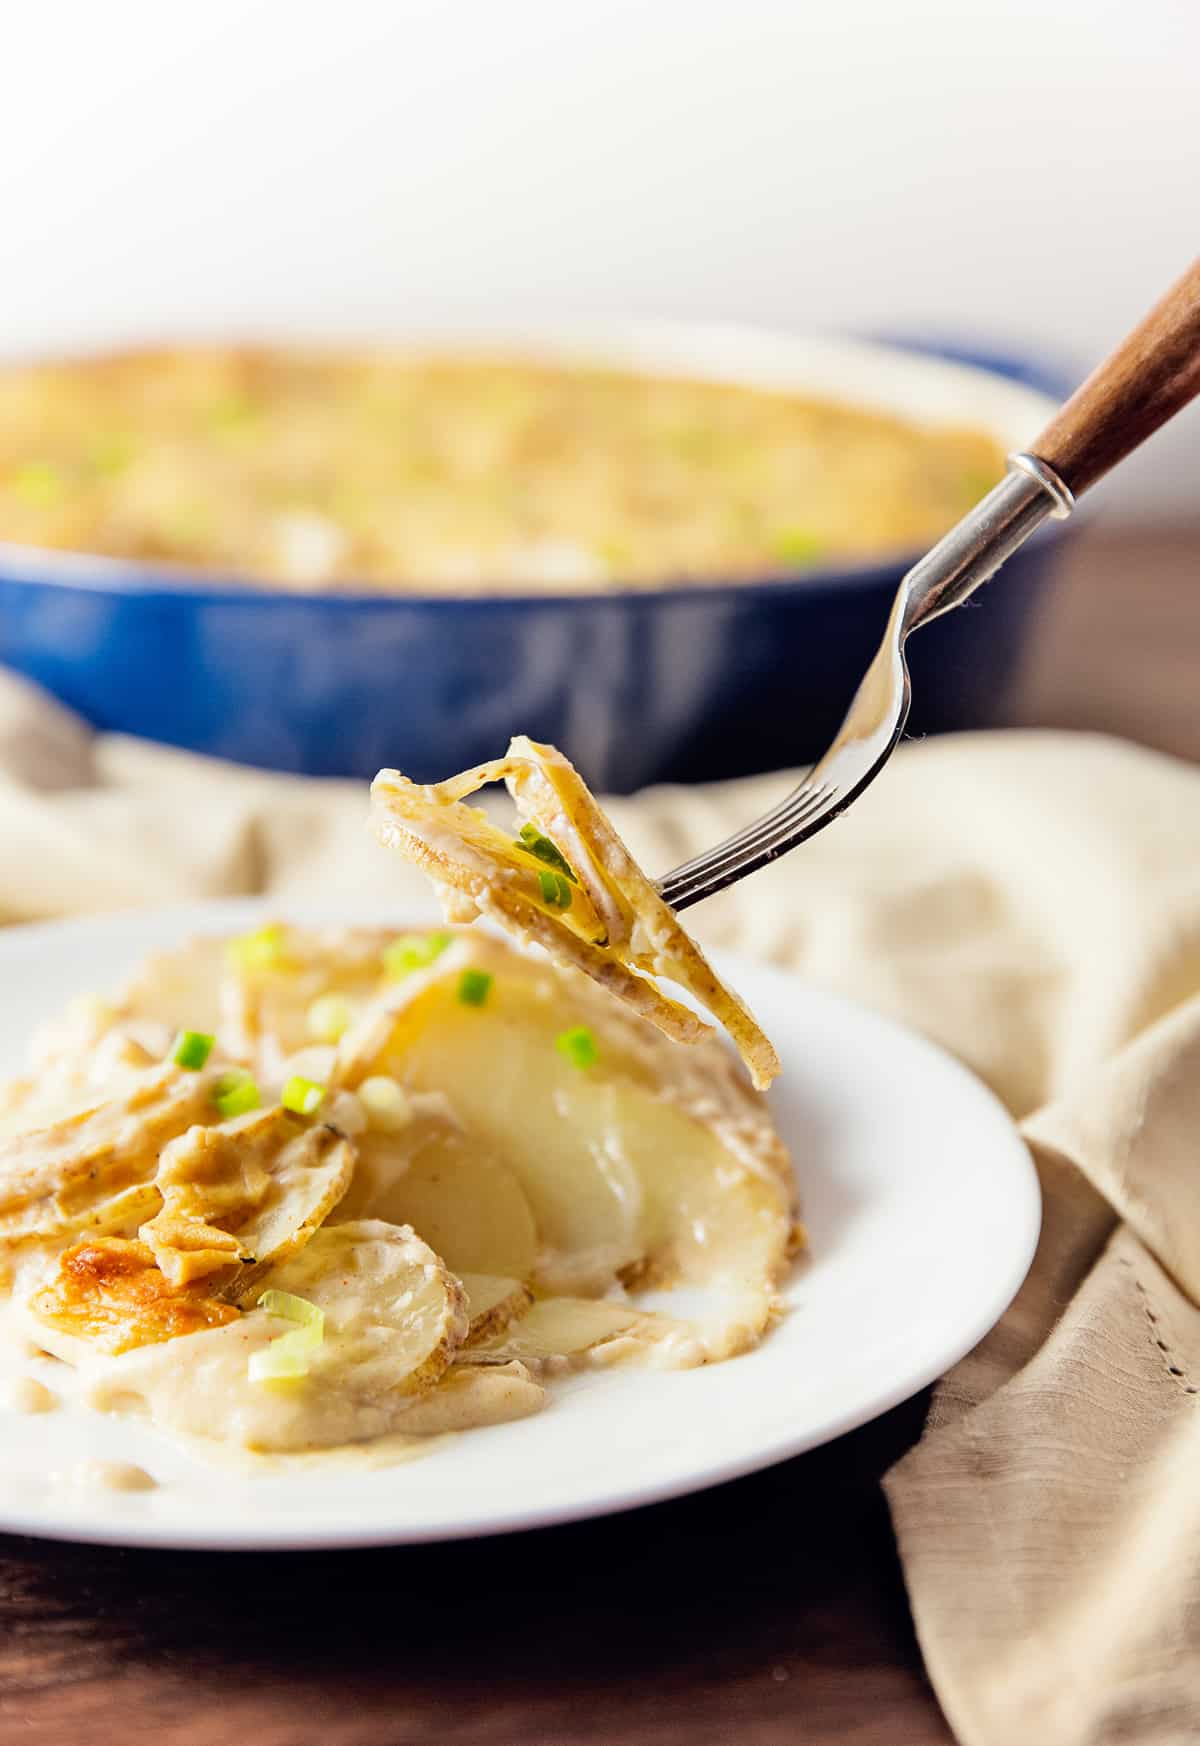 scalloped potatoes, potatoes, vegan, vegetarian, whole food plant based, gluten free, recipe, wfpb, healthy, oil free, no refined sugar, no oil, refined sugar free, dinner, side, side dish, dairy free, entertaining, dinner party